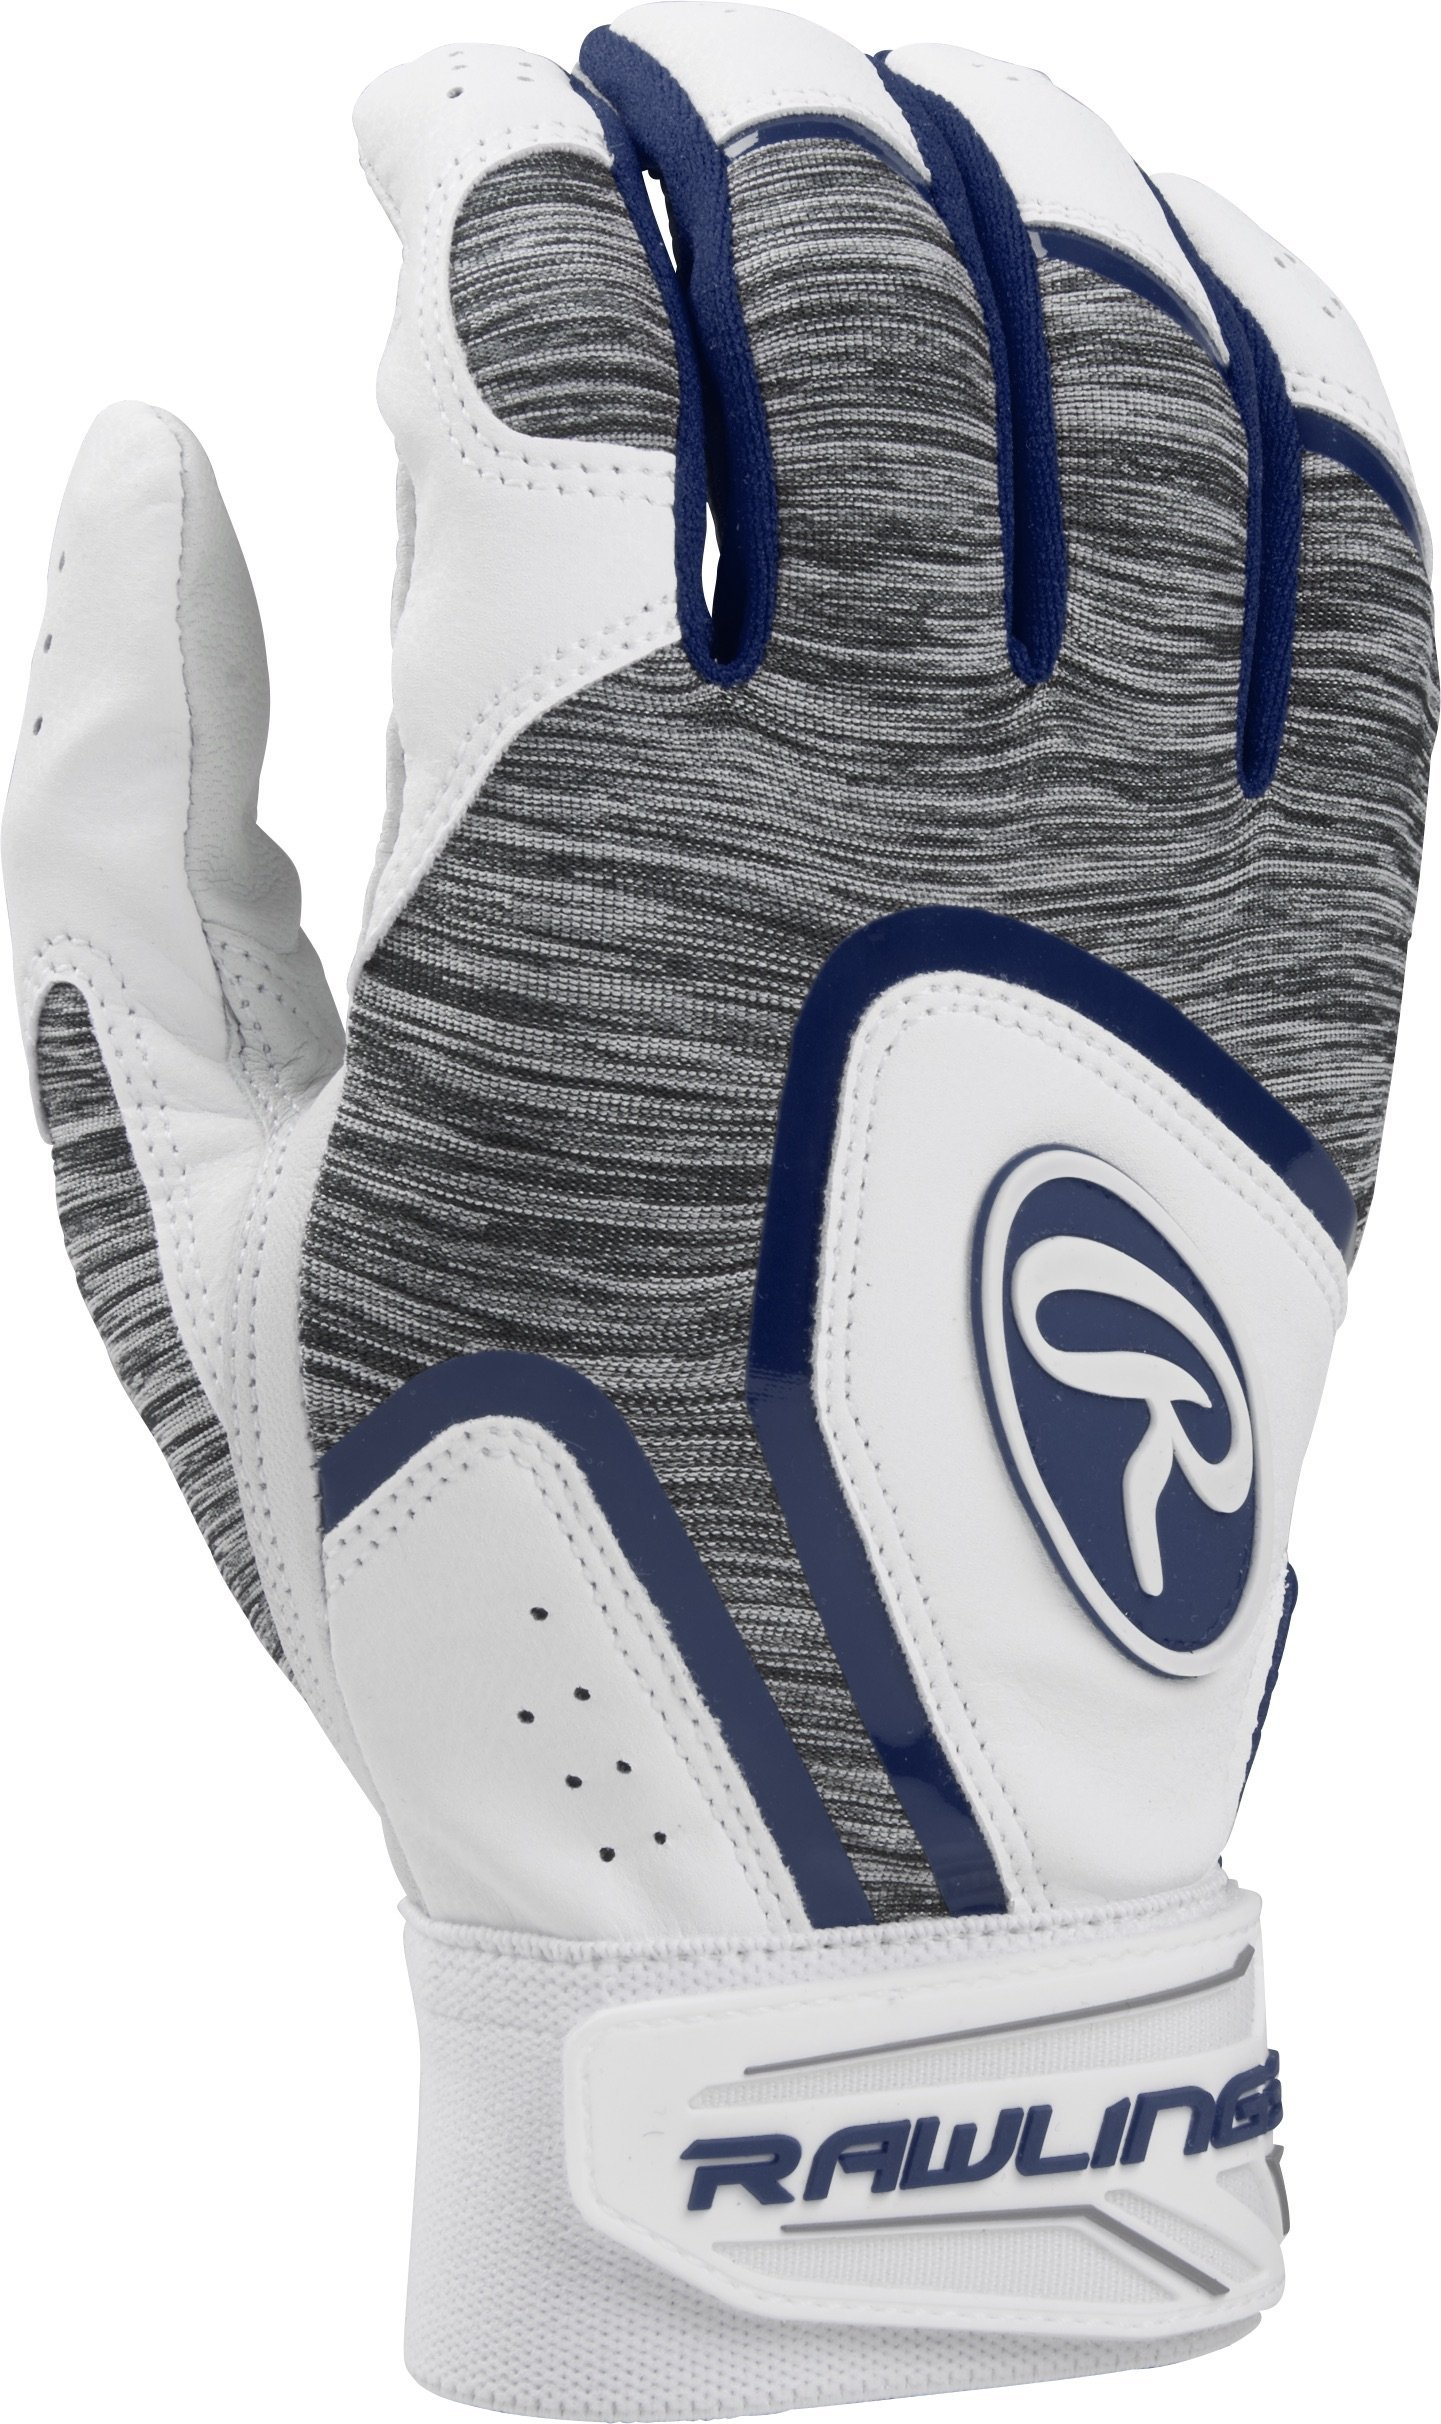 Rawlings 5150WBG-N-89 Rawlngs 5150 Batting Gloves, Navy by Rawlings